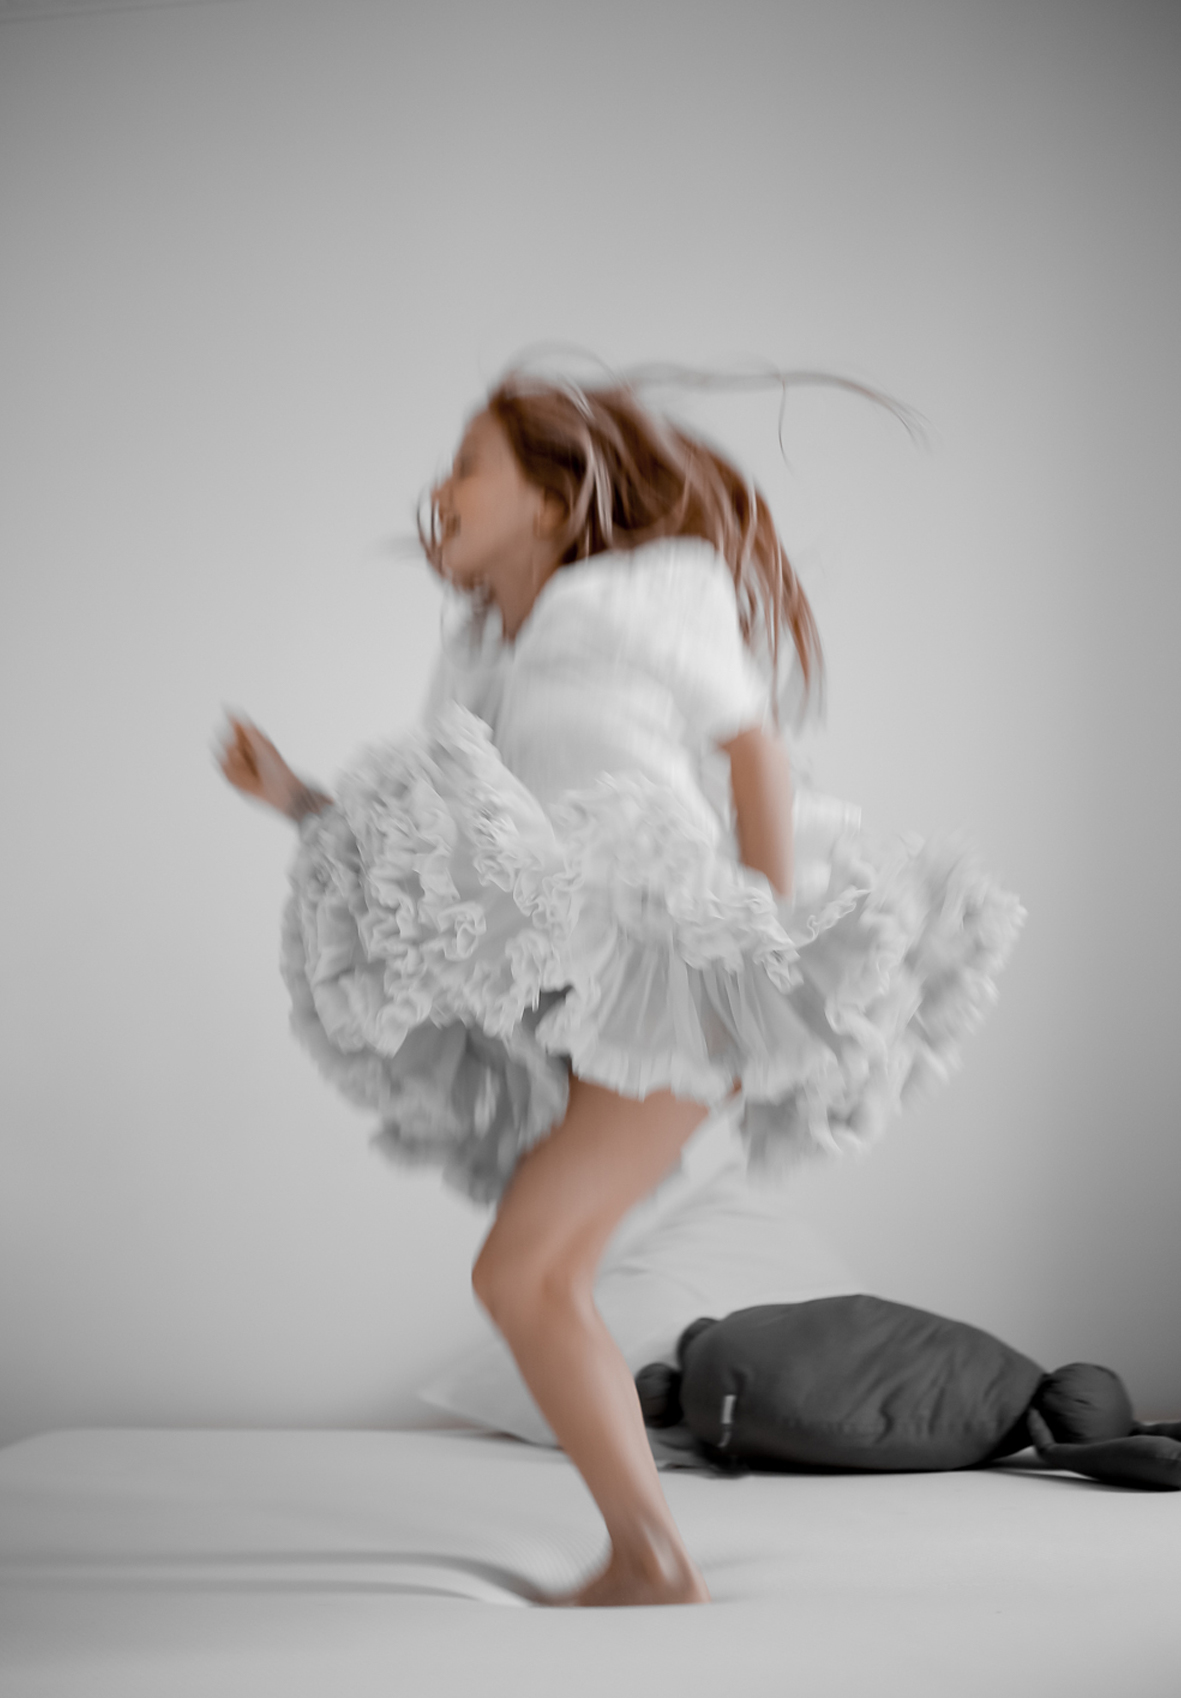 Kid jumping on bed © Karine Kong Photography, All Rights Reserved.jpg